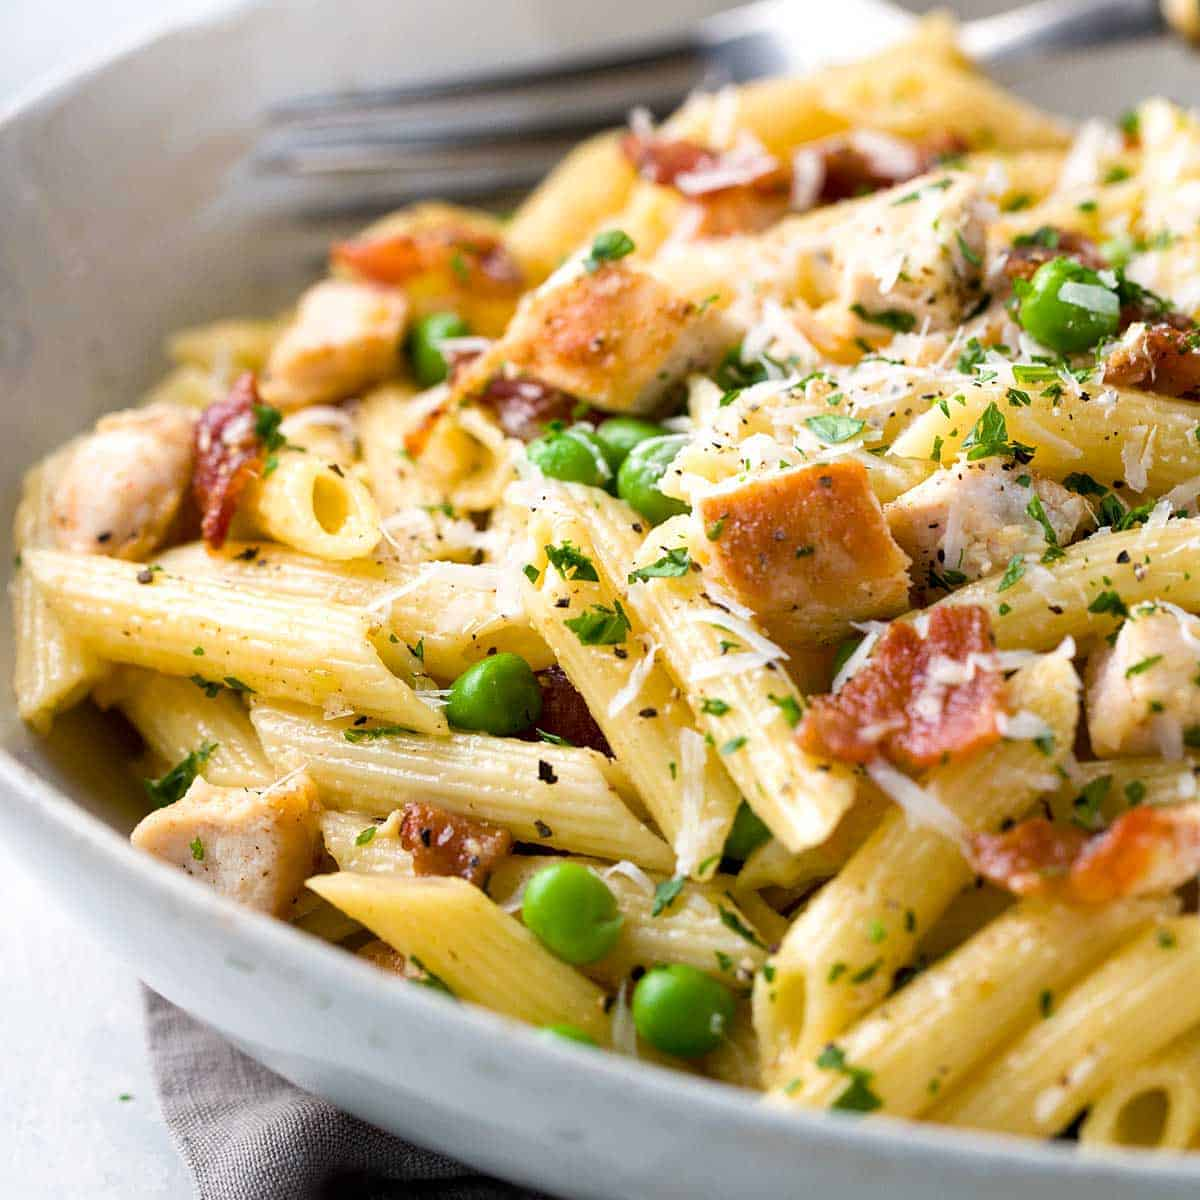 FRIDAY - Chicken and Bacon Carbonara Pasta